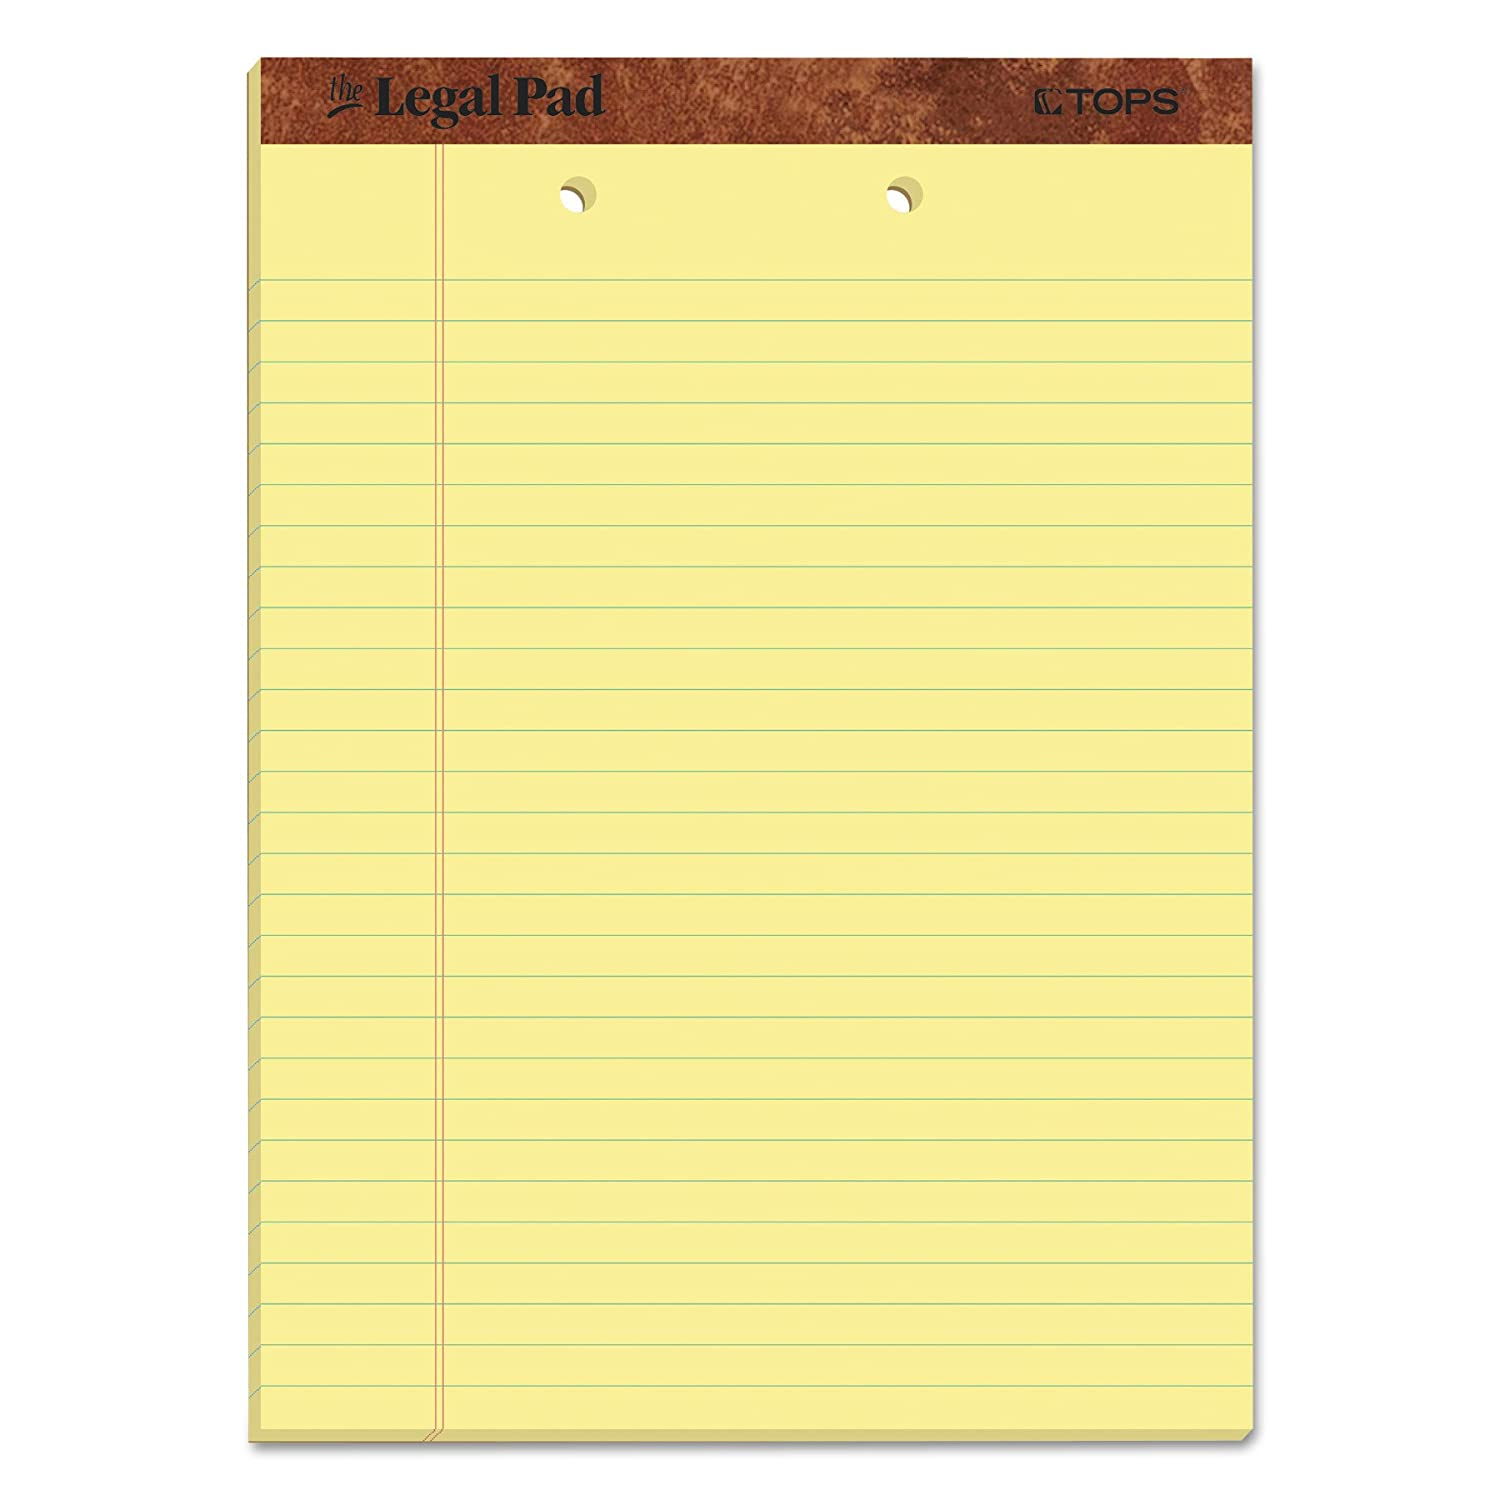 TOPS The Legal Pad Legal Pad, 8-1/2 x 11-3/4 Inches, Perforated, 2-Hole Punched, Canary, Legal/Wide Rule, 50 Sheets per Pad, 12 Pads per Pack (7531) TOPS Business Forms Inc